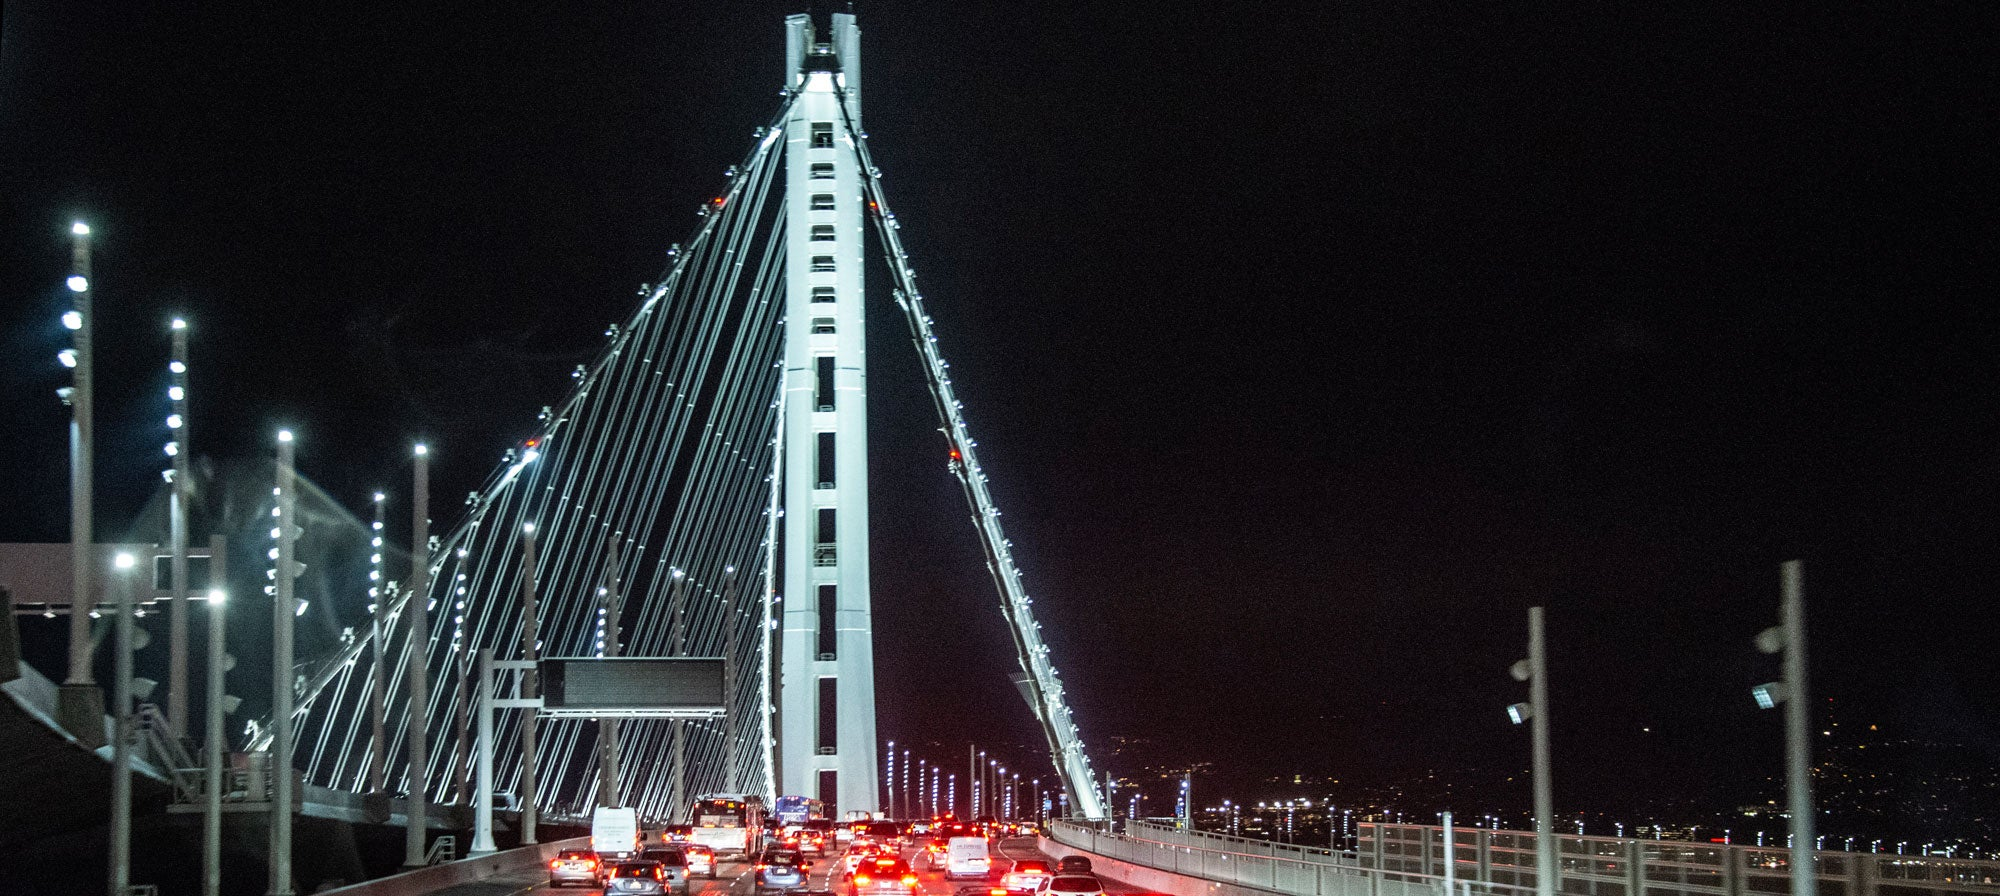 Crossings: Perspective Paper Weighs Options for New Transbay Bridges, Tunnels